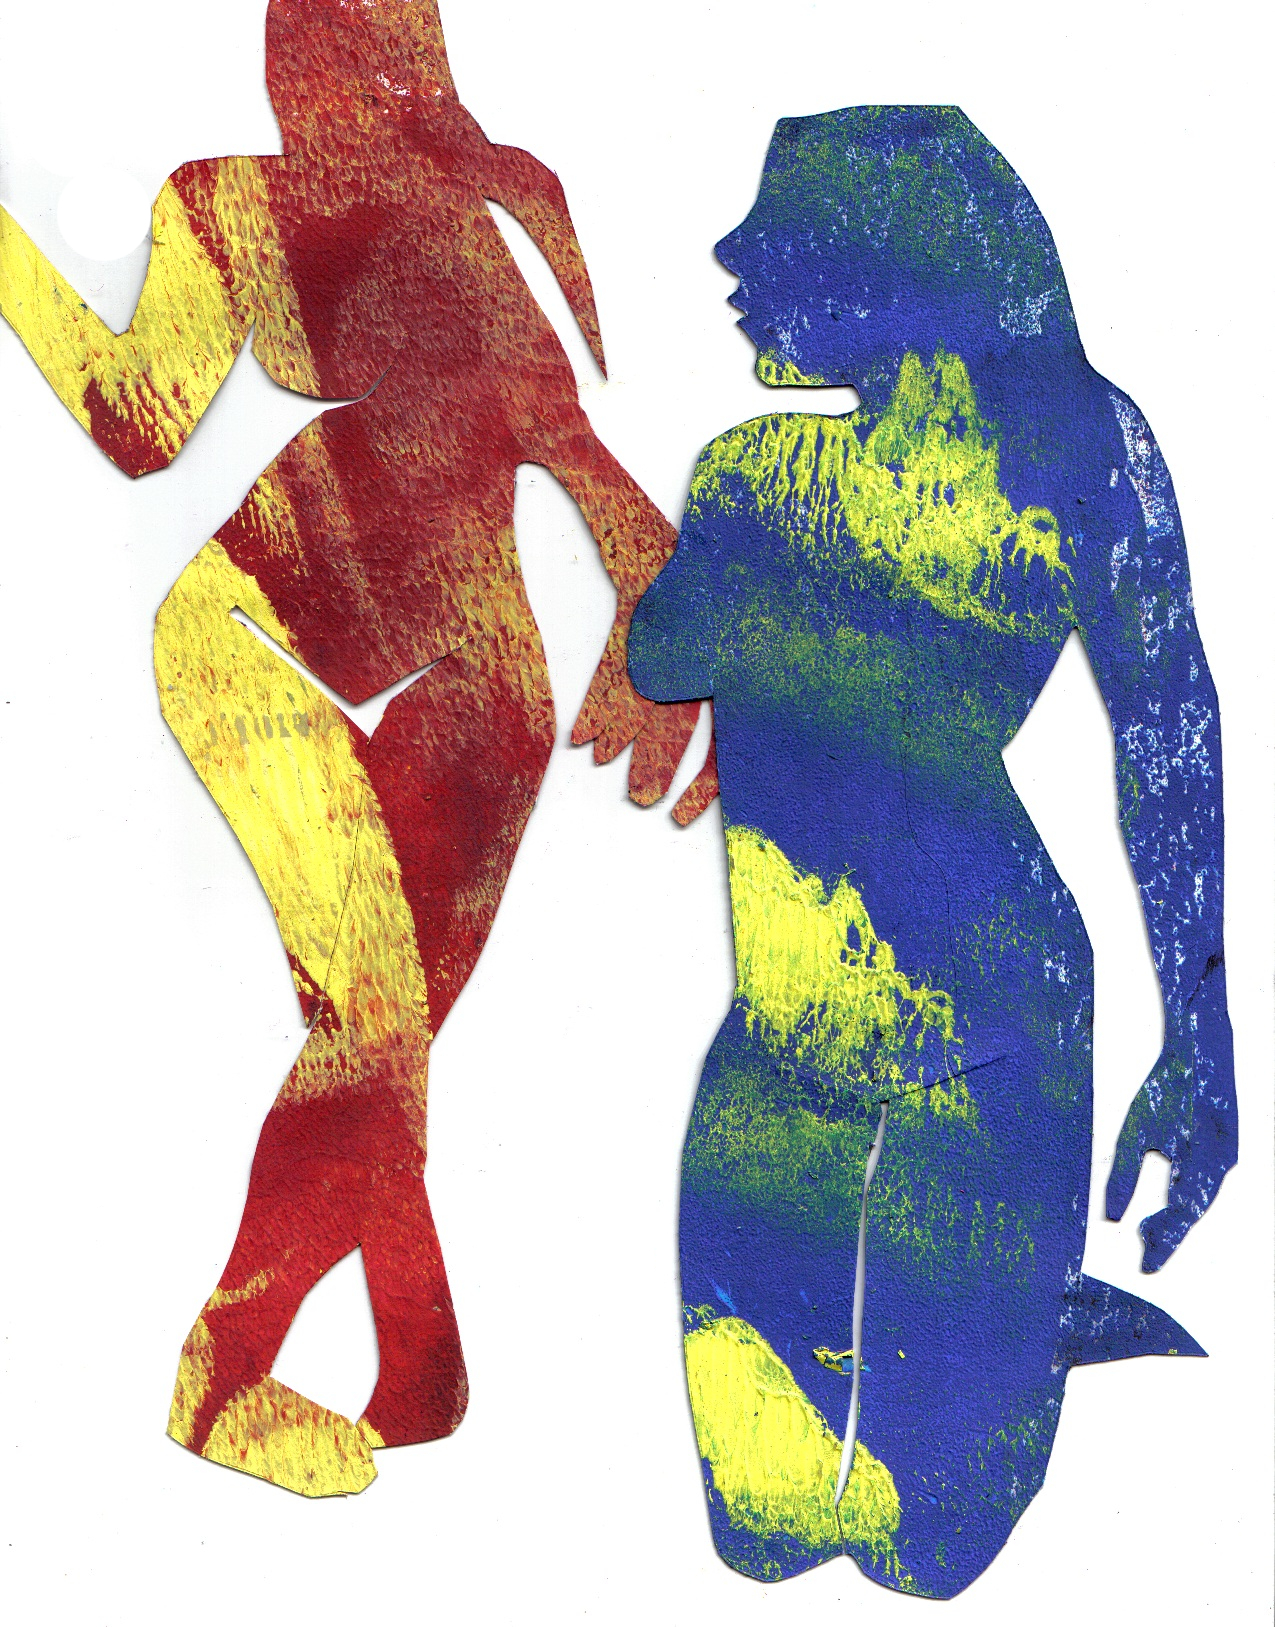 Painted Figure Drawing Cut Out 2